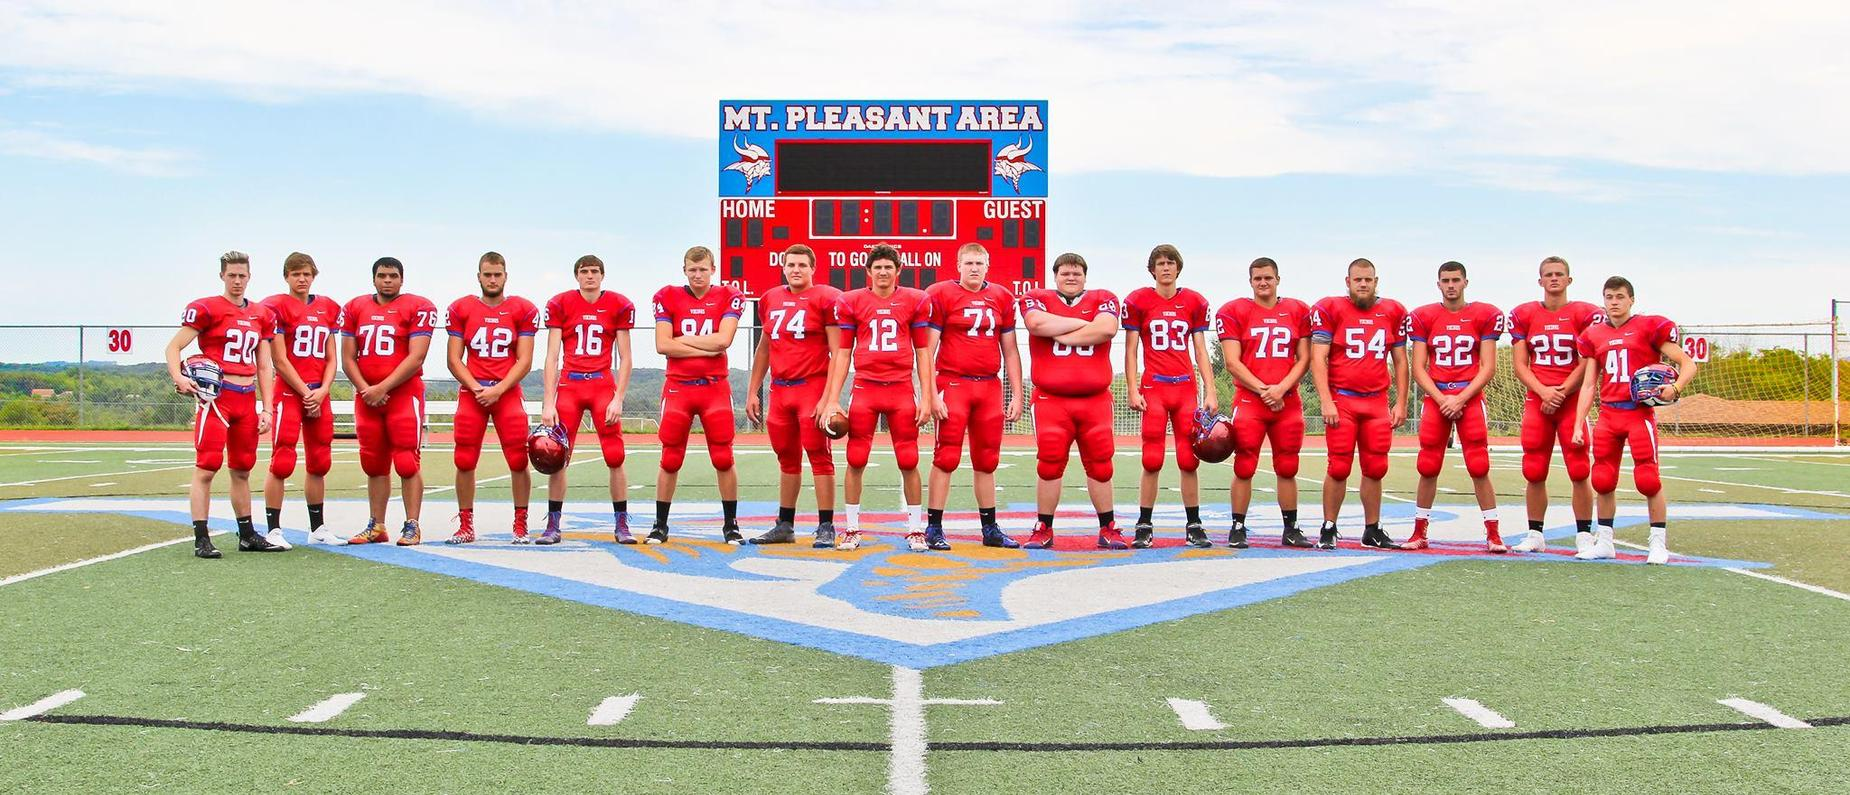 Mount Pleasant Senior High Football Team